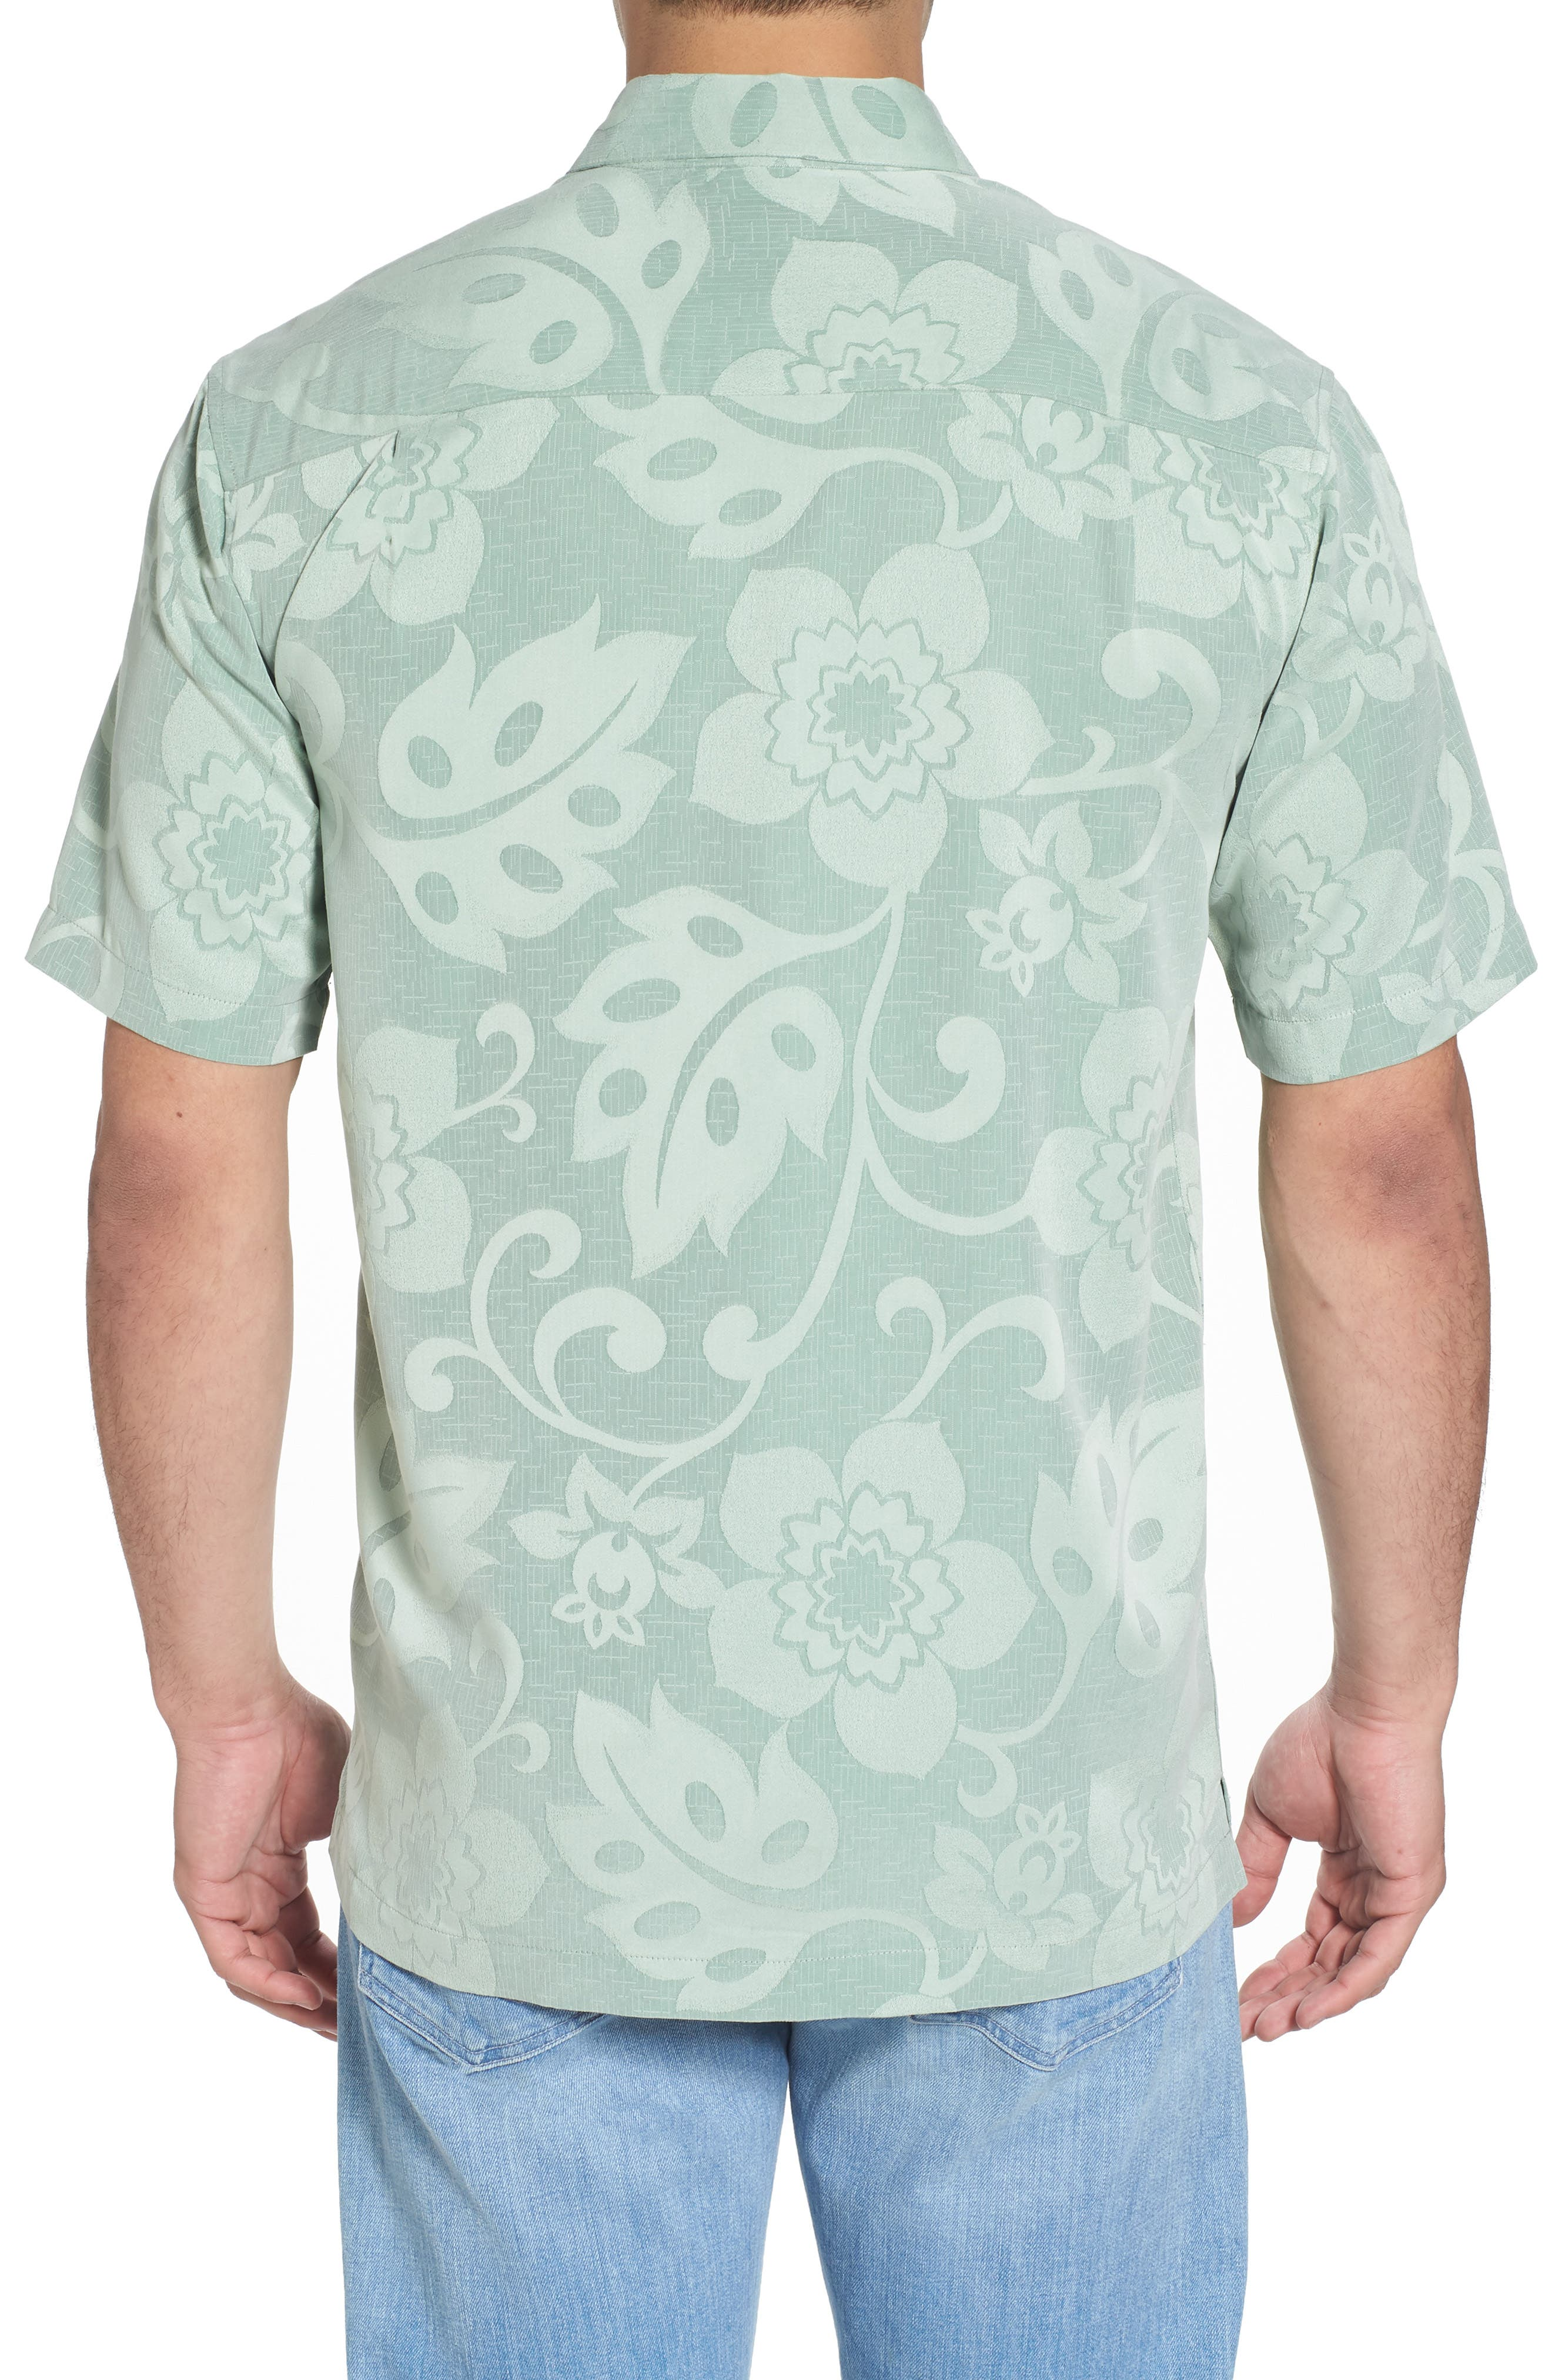 Kalawai Relaxed Fit Camp Shirt,                             Alternate thumbnail 2, color,                             310